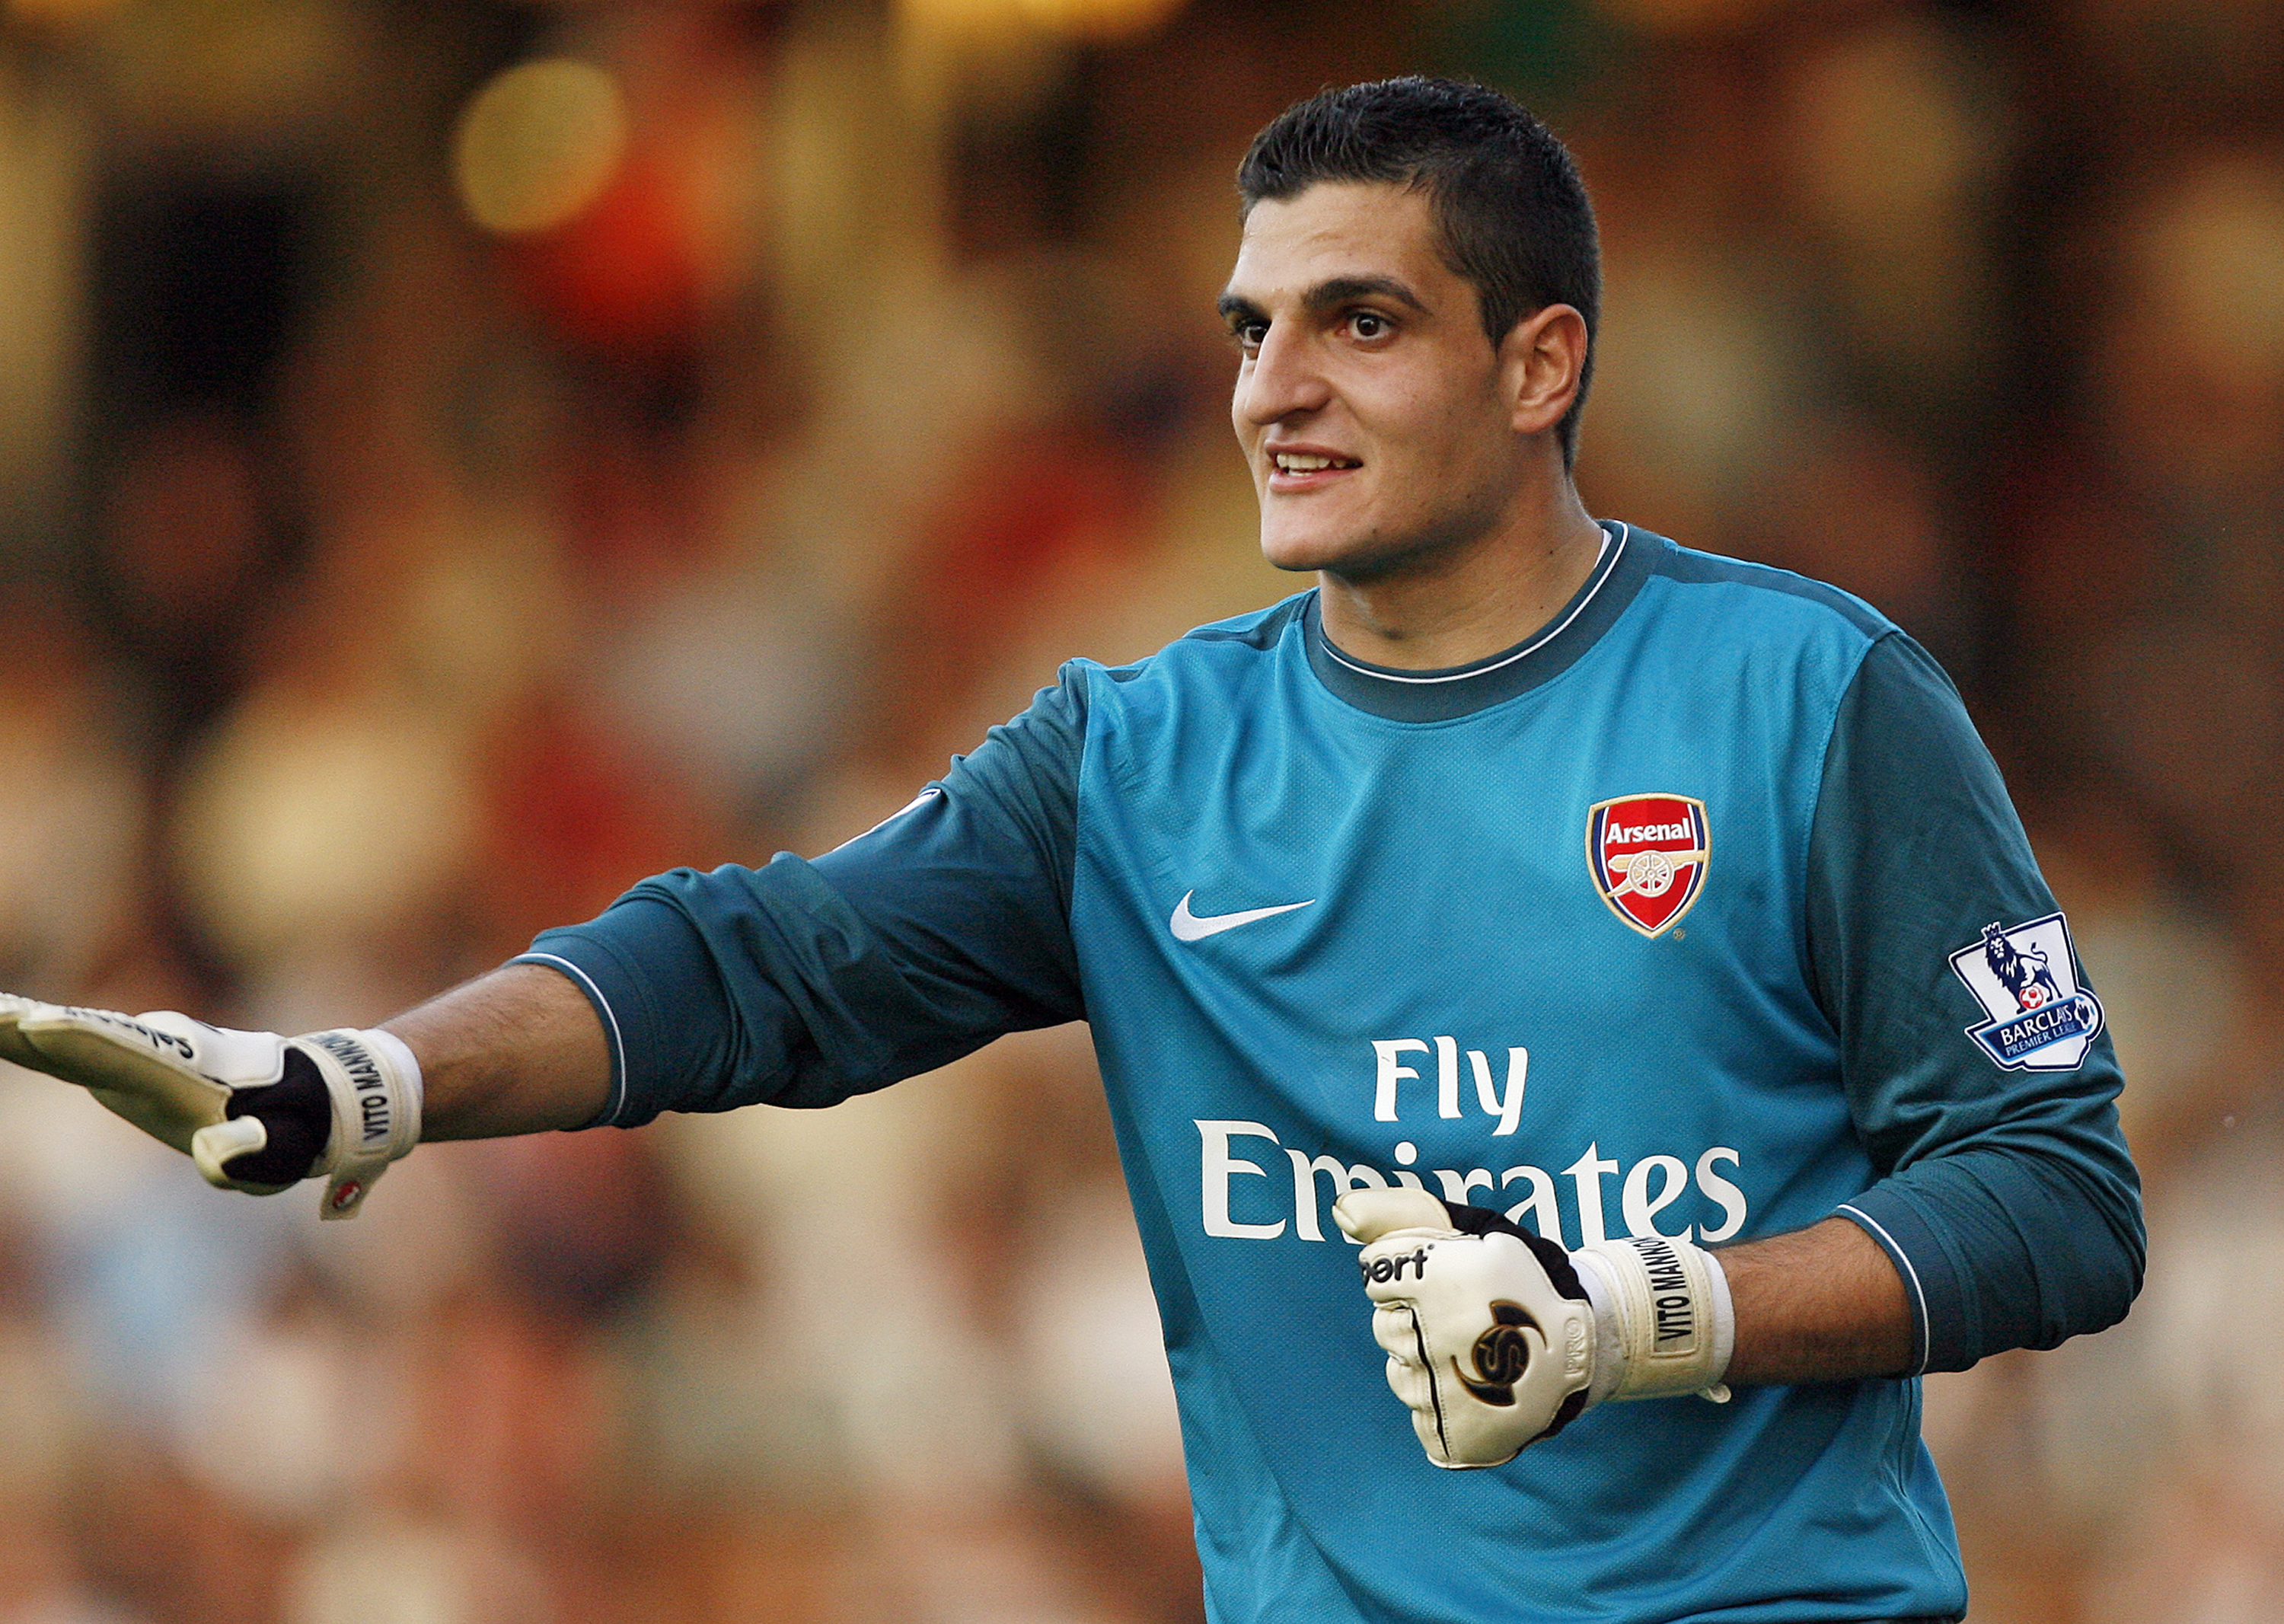 'Playing behind closed doors was terrible!' - Ex-Arsenal goalkeeper Mannone sends warning to the Premier League